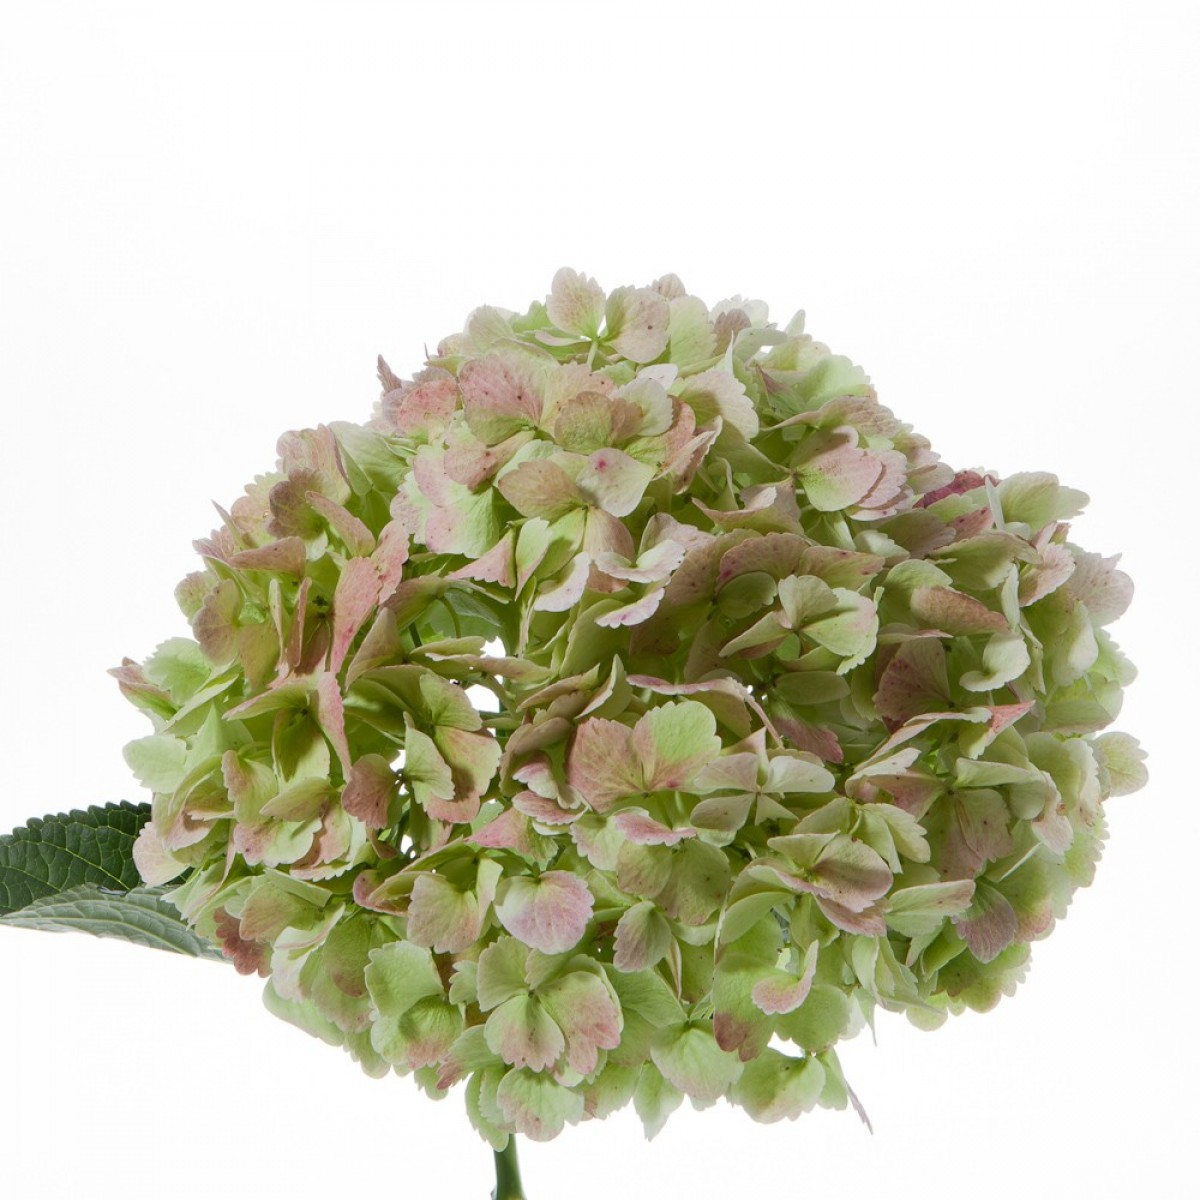 Antique Hydrangea     Colors:  Green/pink, green/red   Care:  Remove all but top leaves, cold water, preservative